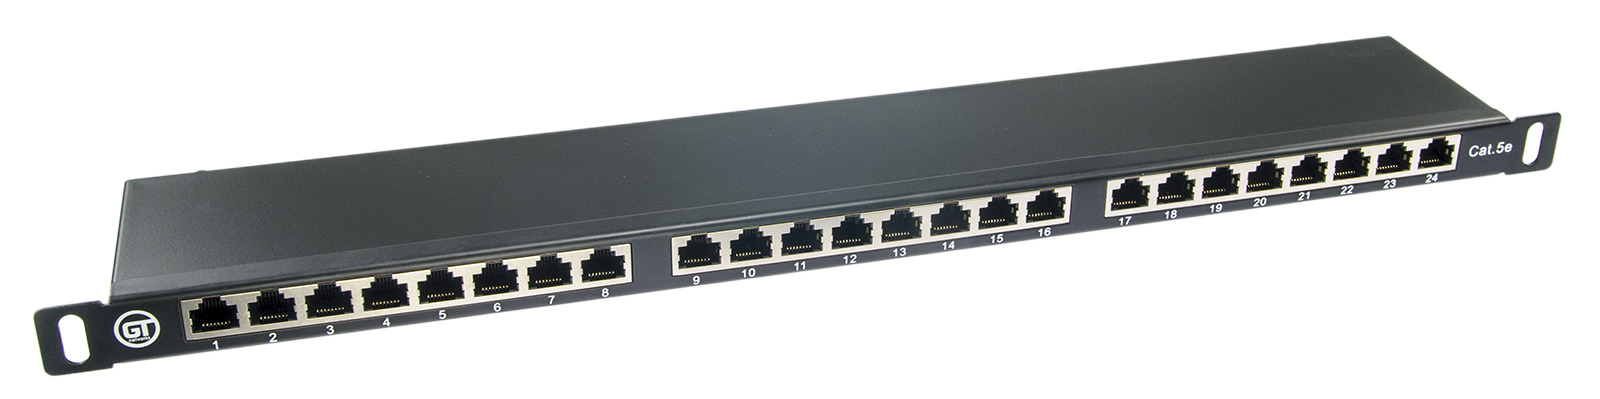 "Patchpanel FTP rack 19"", 0.5U, kat. 5e, 24 porty"